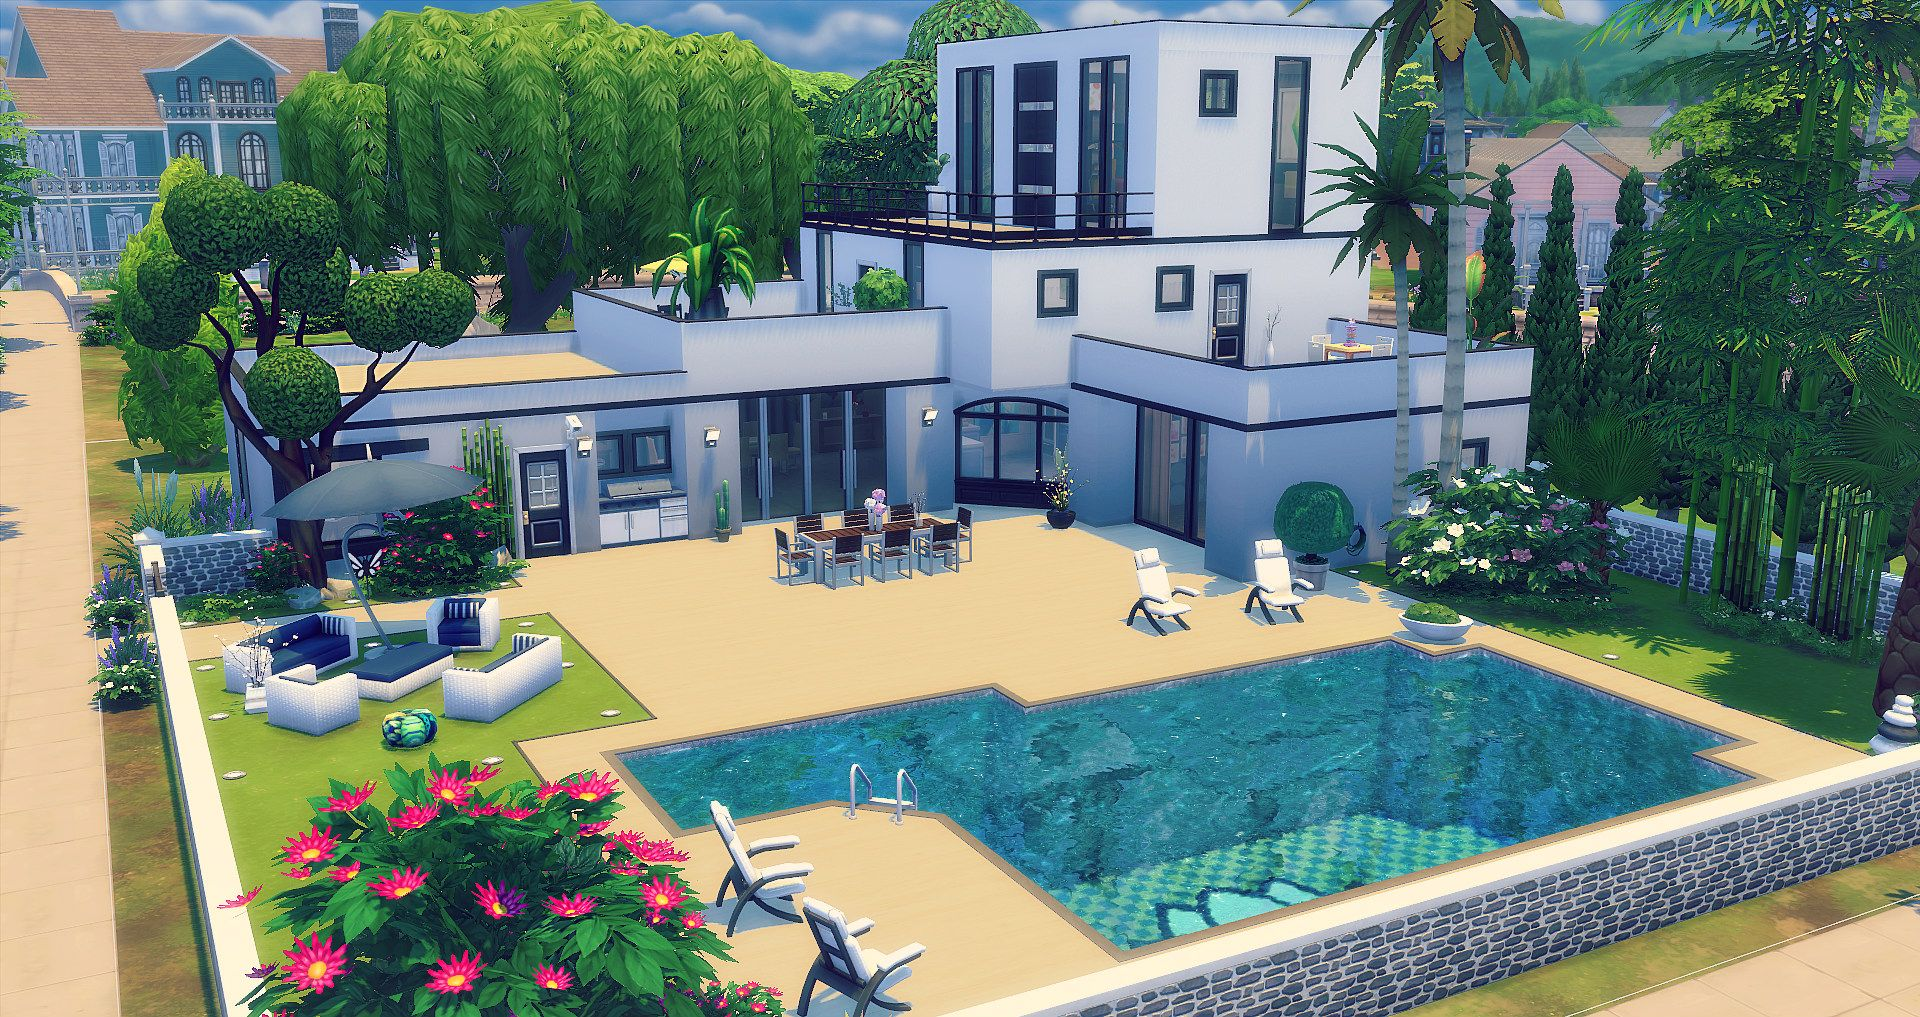 Impressionnant Les Sims 4 Maison A Telecharger And La Revue Sims 4 Penthouse Sims Freeplay Houses Sims House